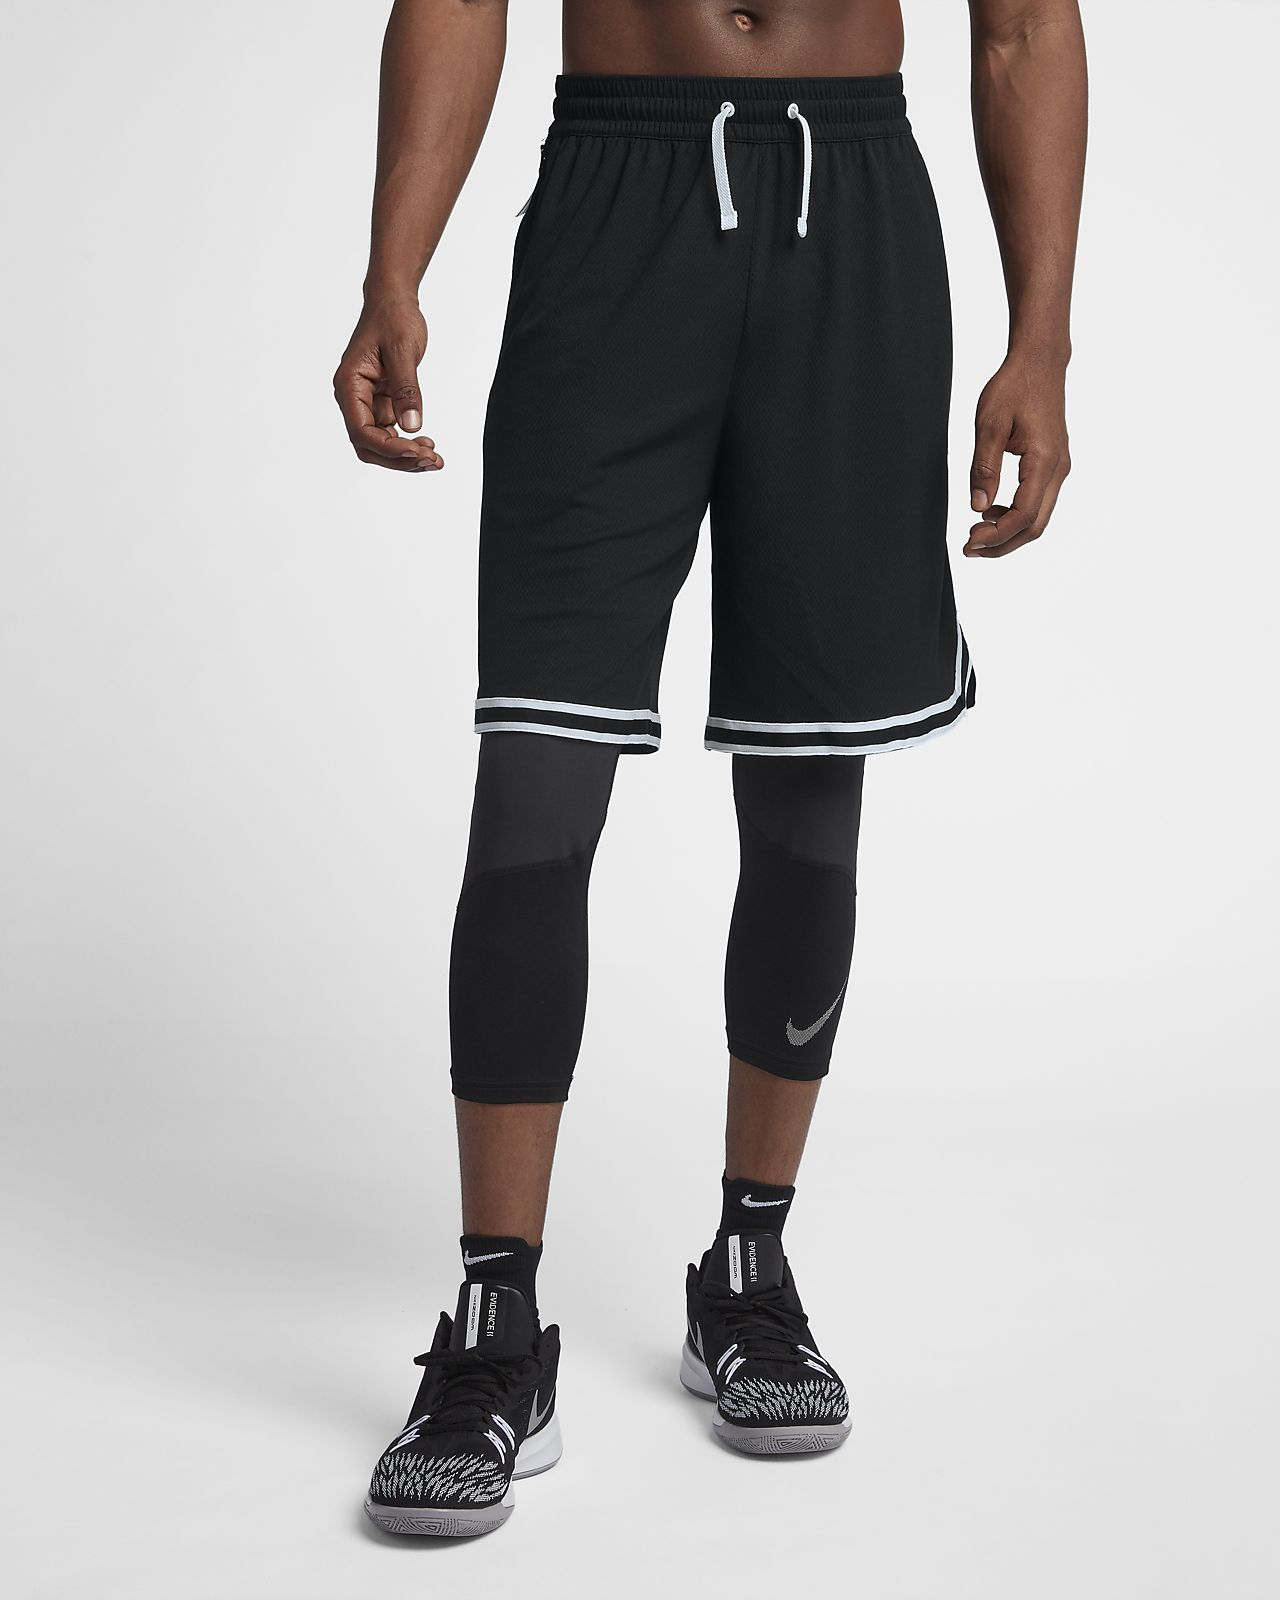 5e584c41e5f9 nike basketball shorts